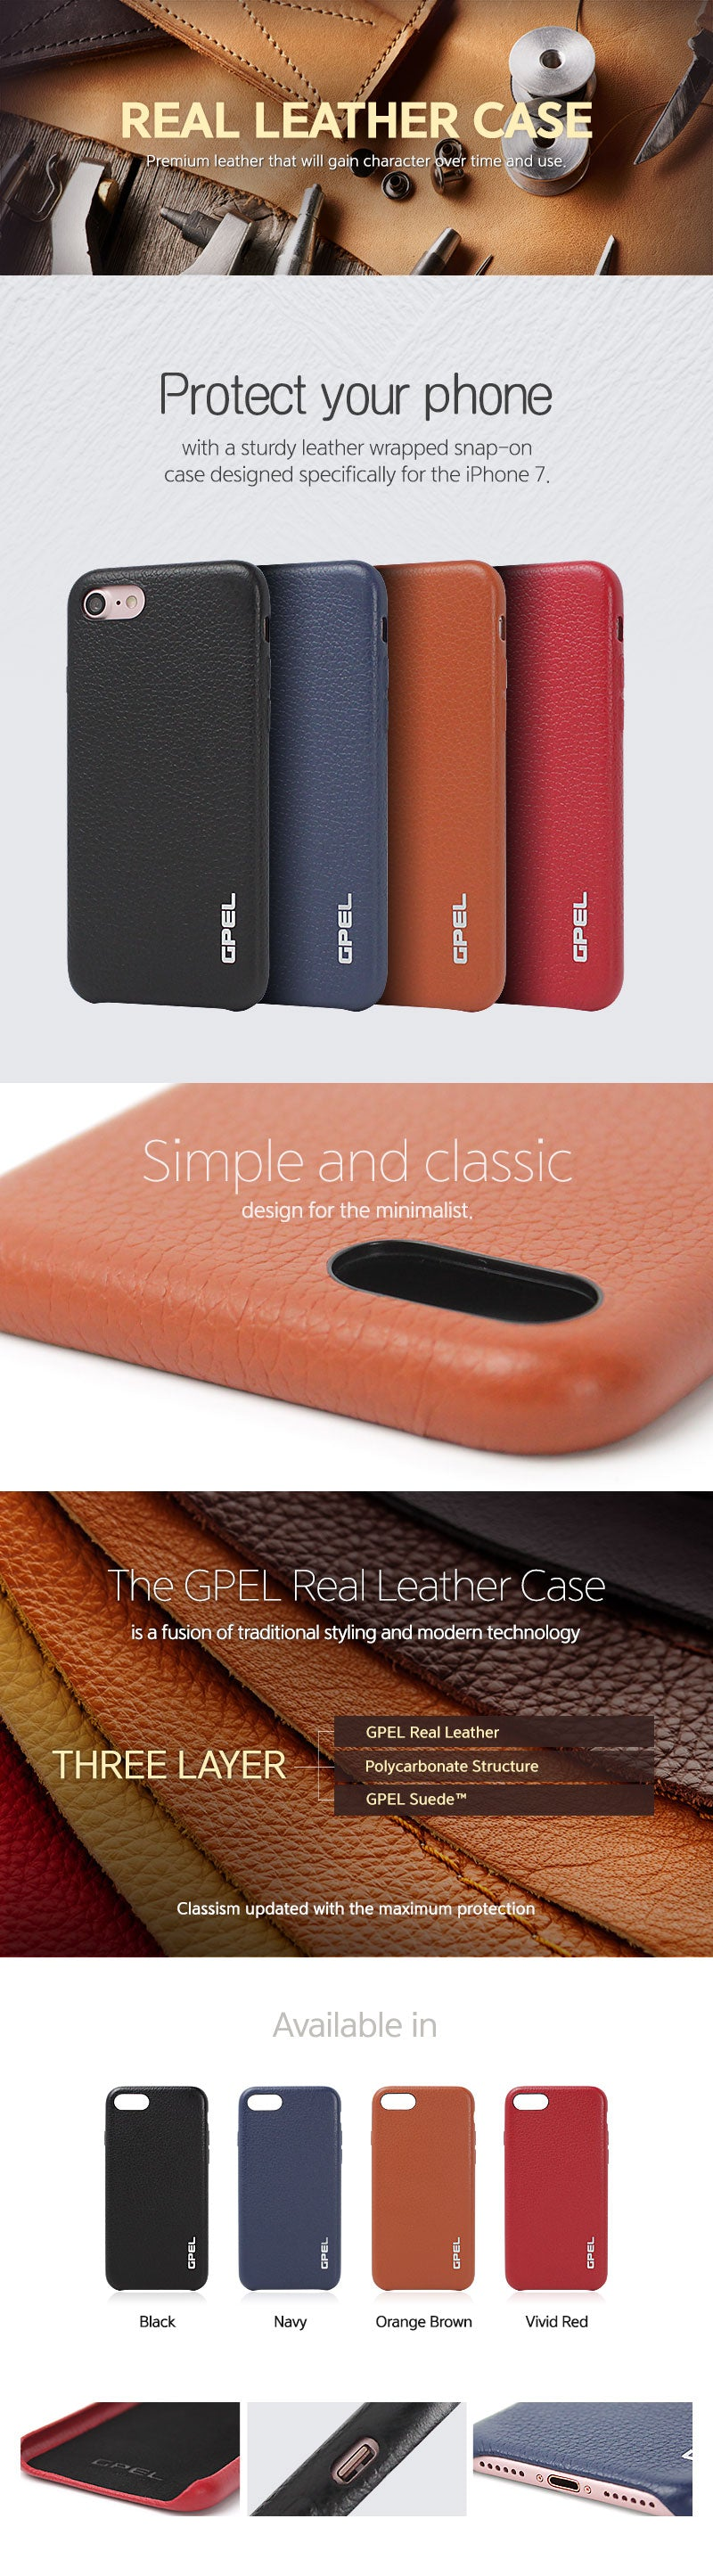 iPhone 7 Real Leather Case